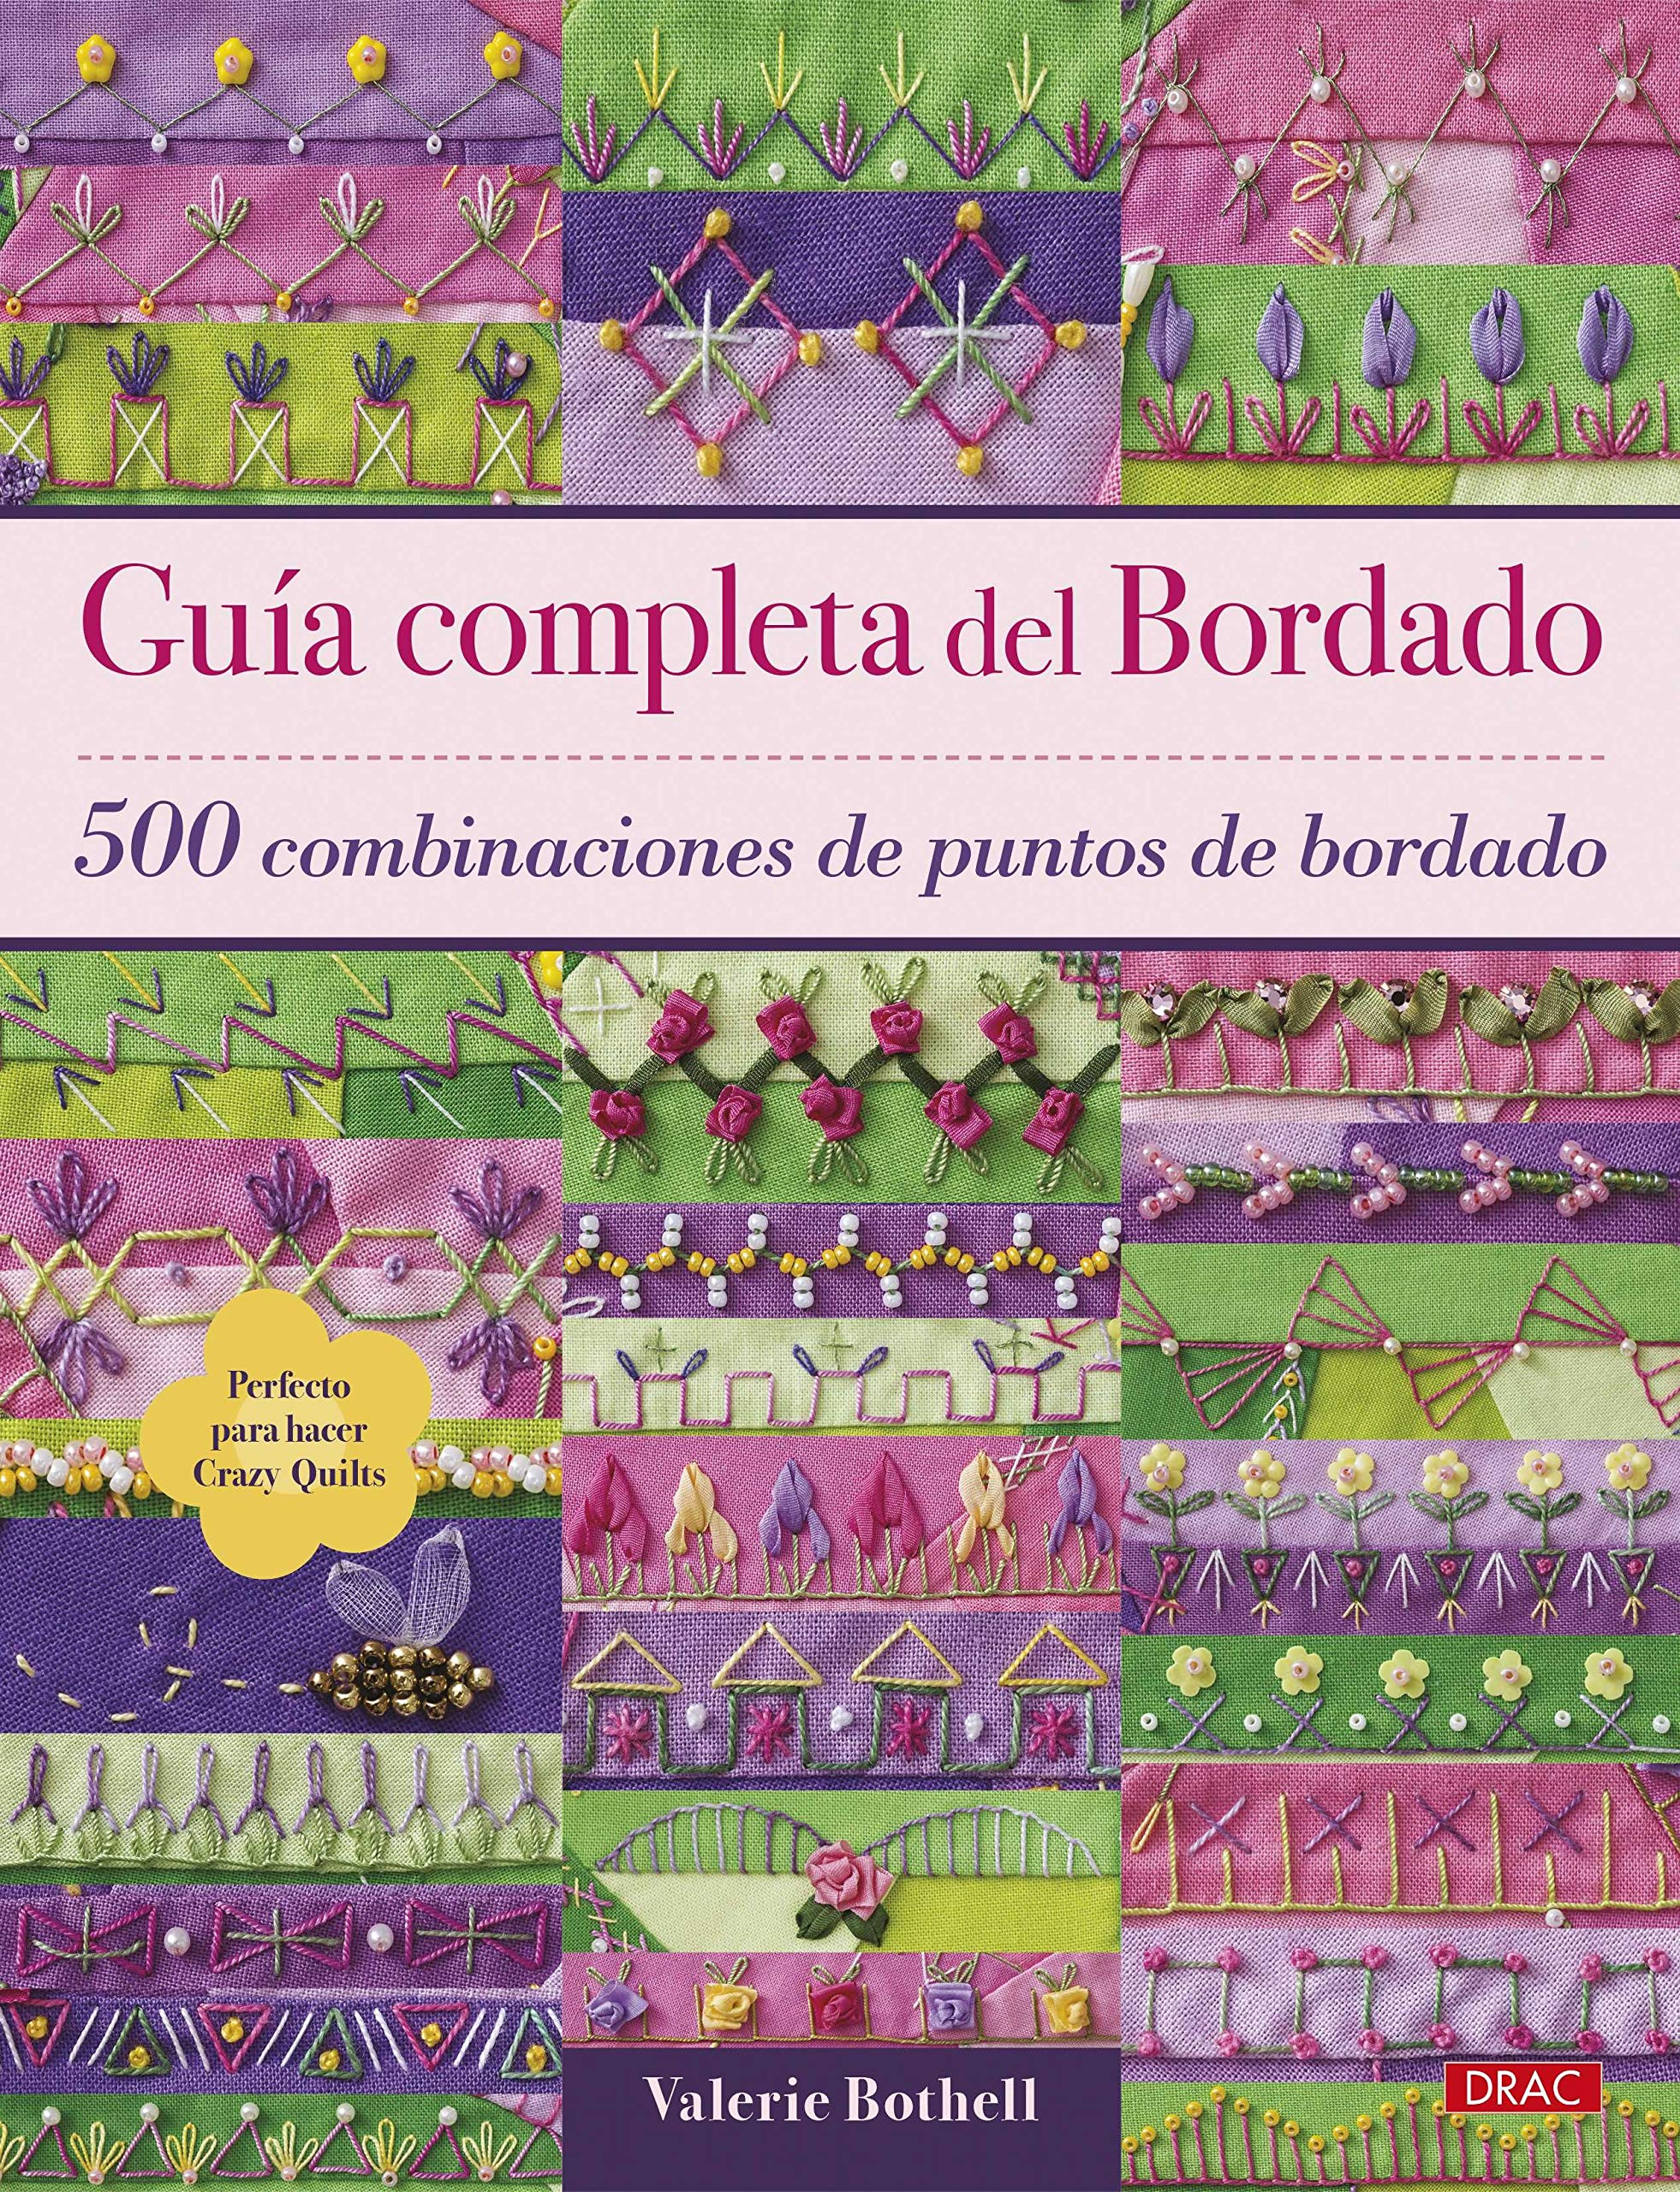 GU�A COMPLETA DE BORDADO: VALERIE BOTHELL: 9788498746181: Amazon.com: Books